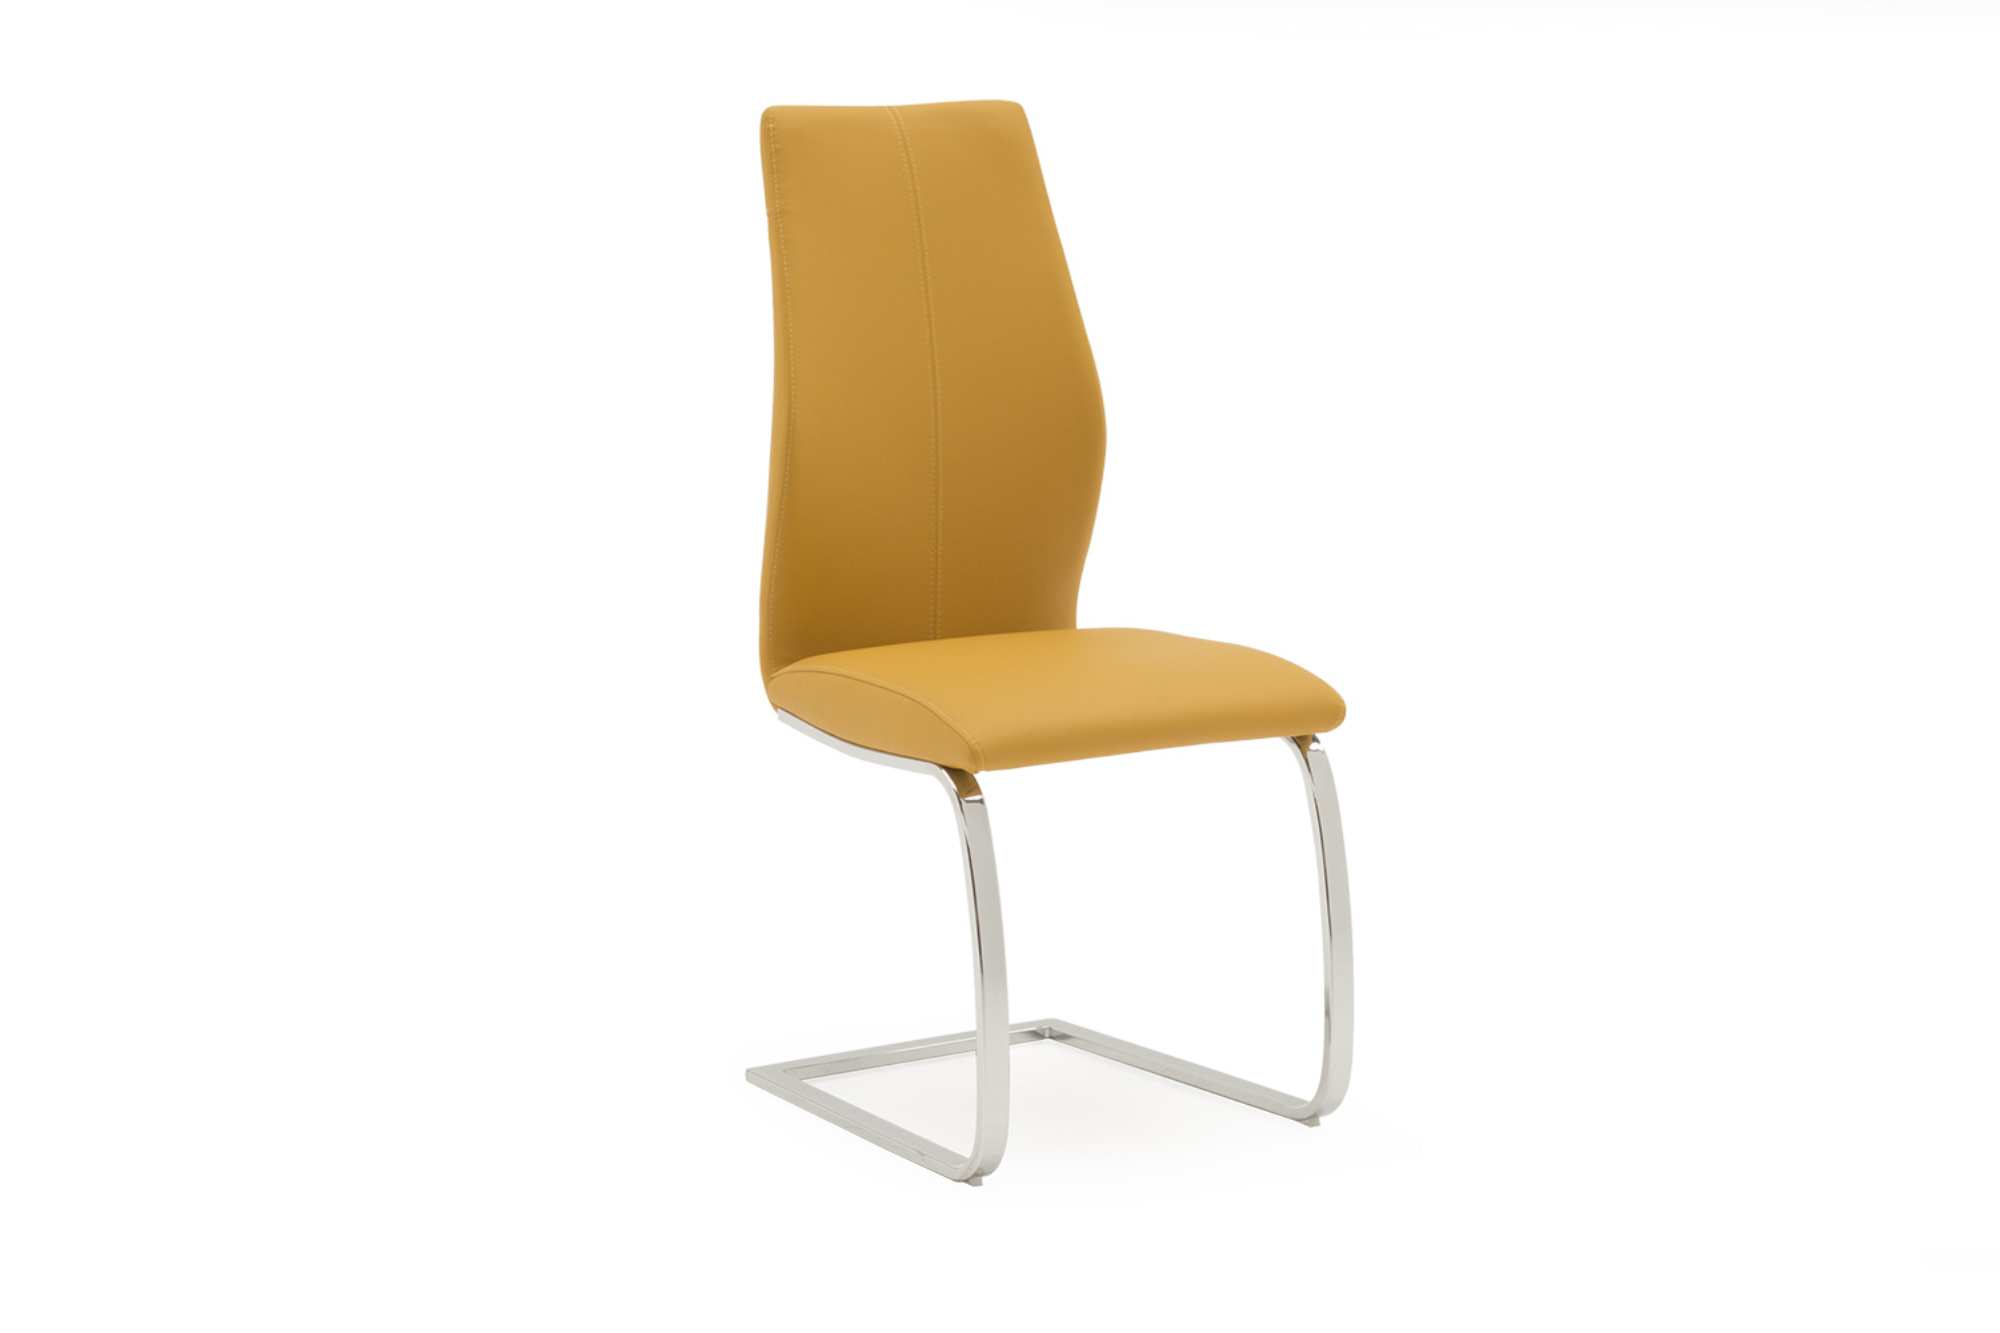 https://www.firstfurniture.co.uk/pub/media/catalog/product/1/5/1505312477_Elis_20Dining_20Chair_20-_20Pumpkin_20-_20Angled.jpg